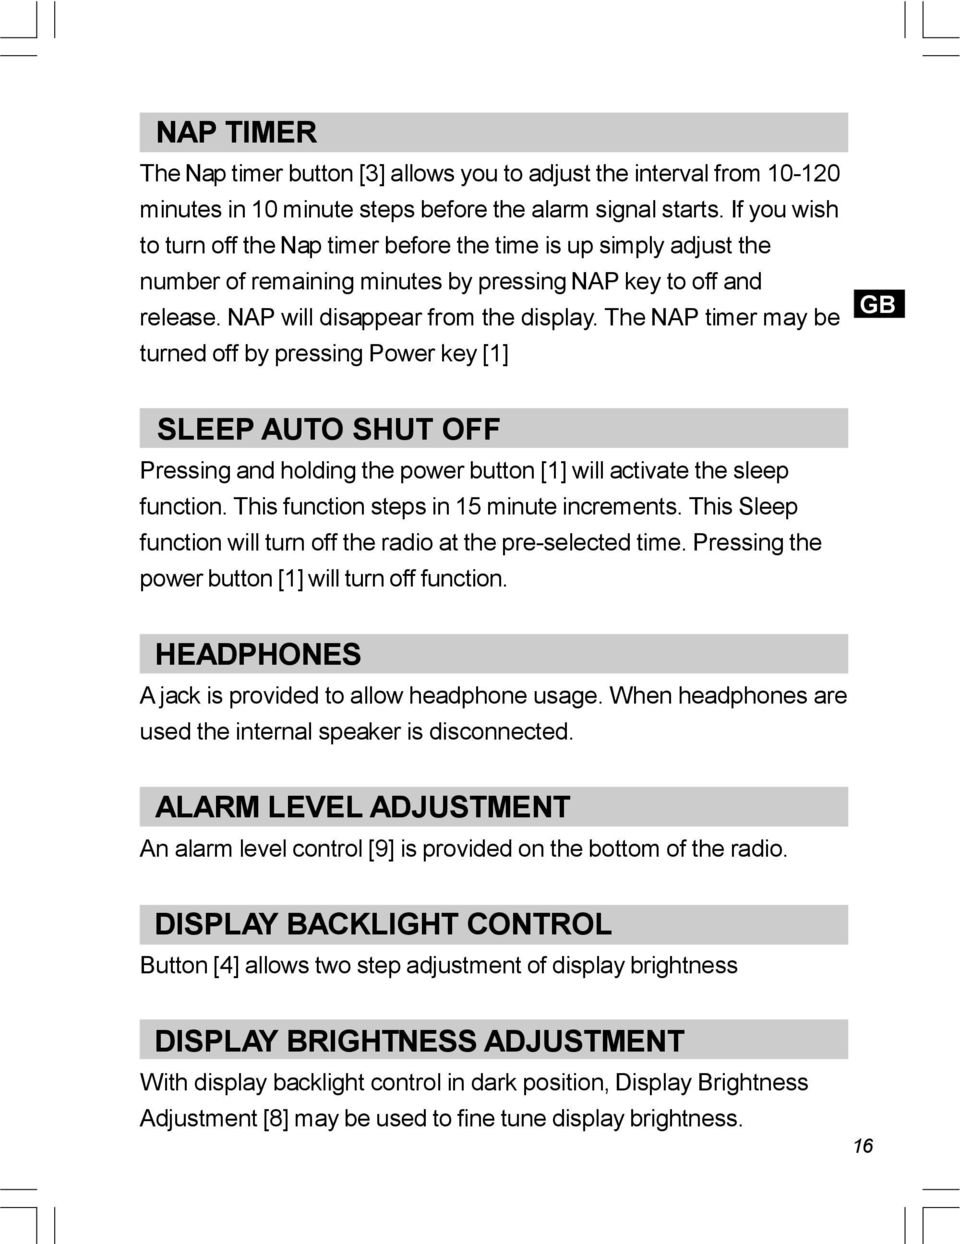 The NAP timer may be turned off by pressing Power key [1] GB SLEEP AUTO SHUT OFF Pressing and holding the power button [1] will activate the sleep function.